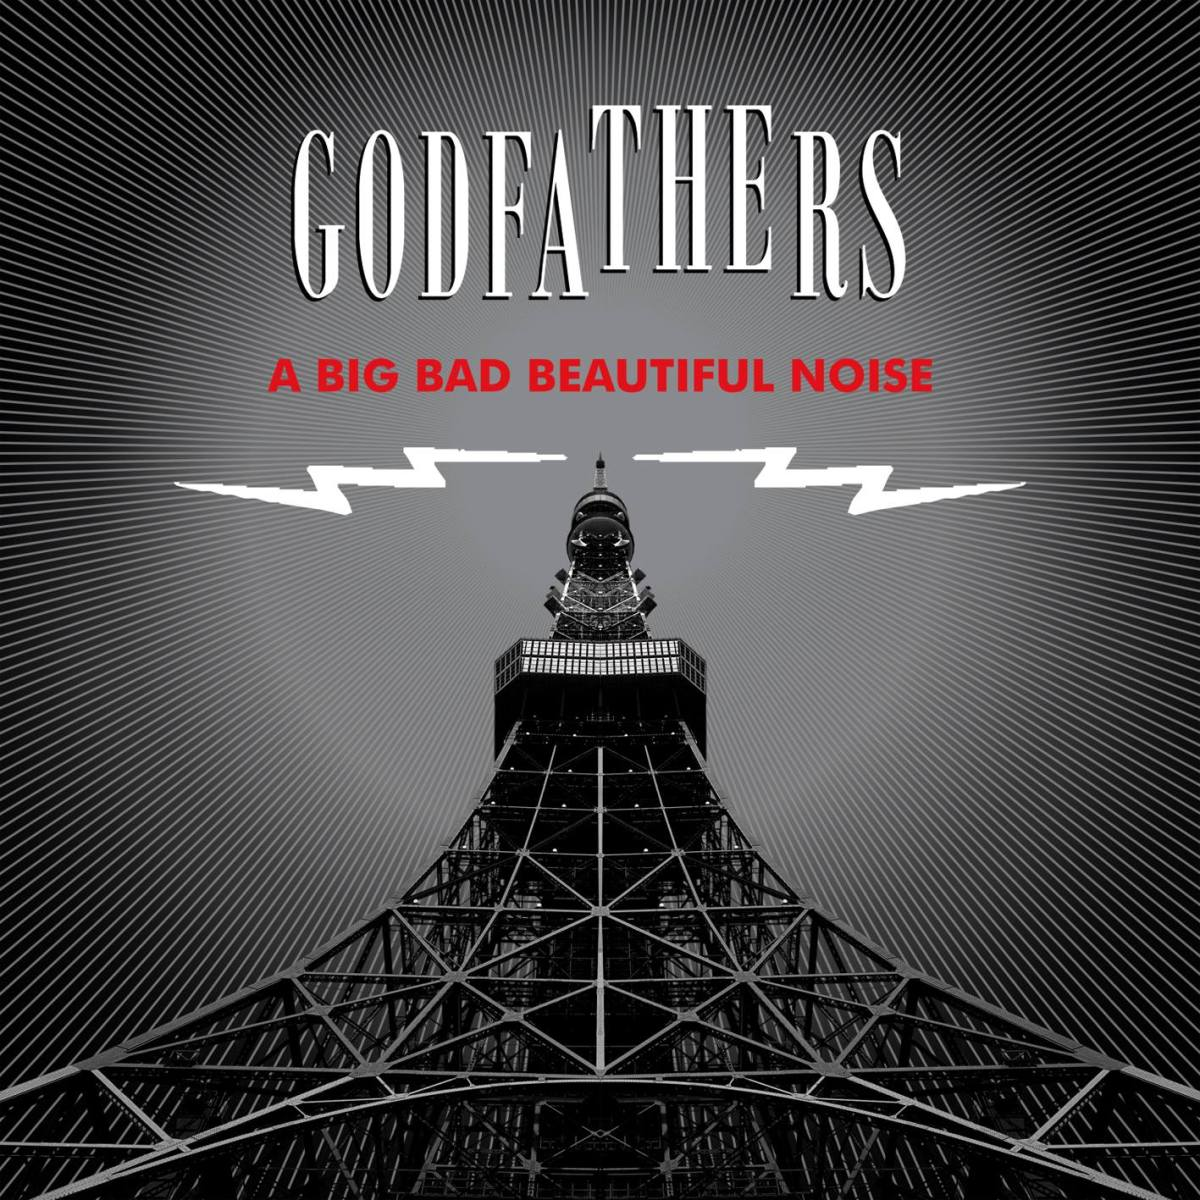 The Godfathers: A Big Bad Beautiful Noise